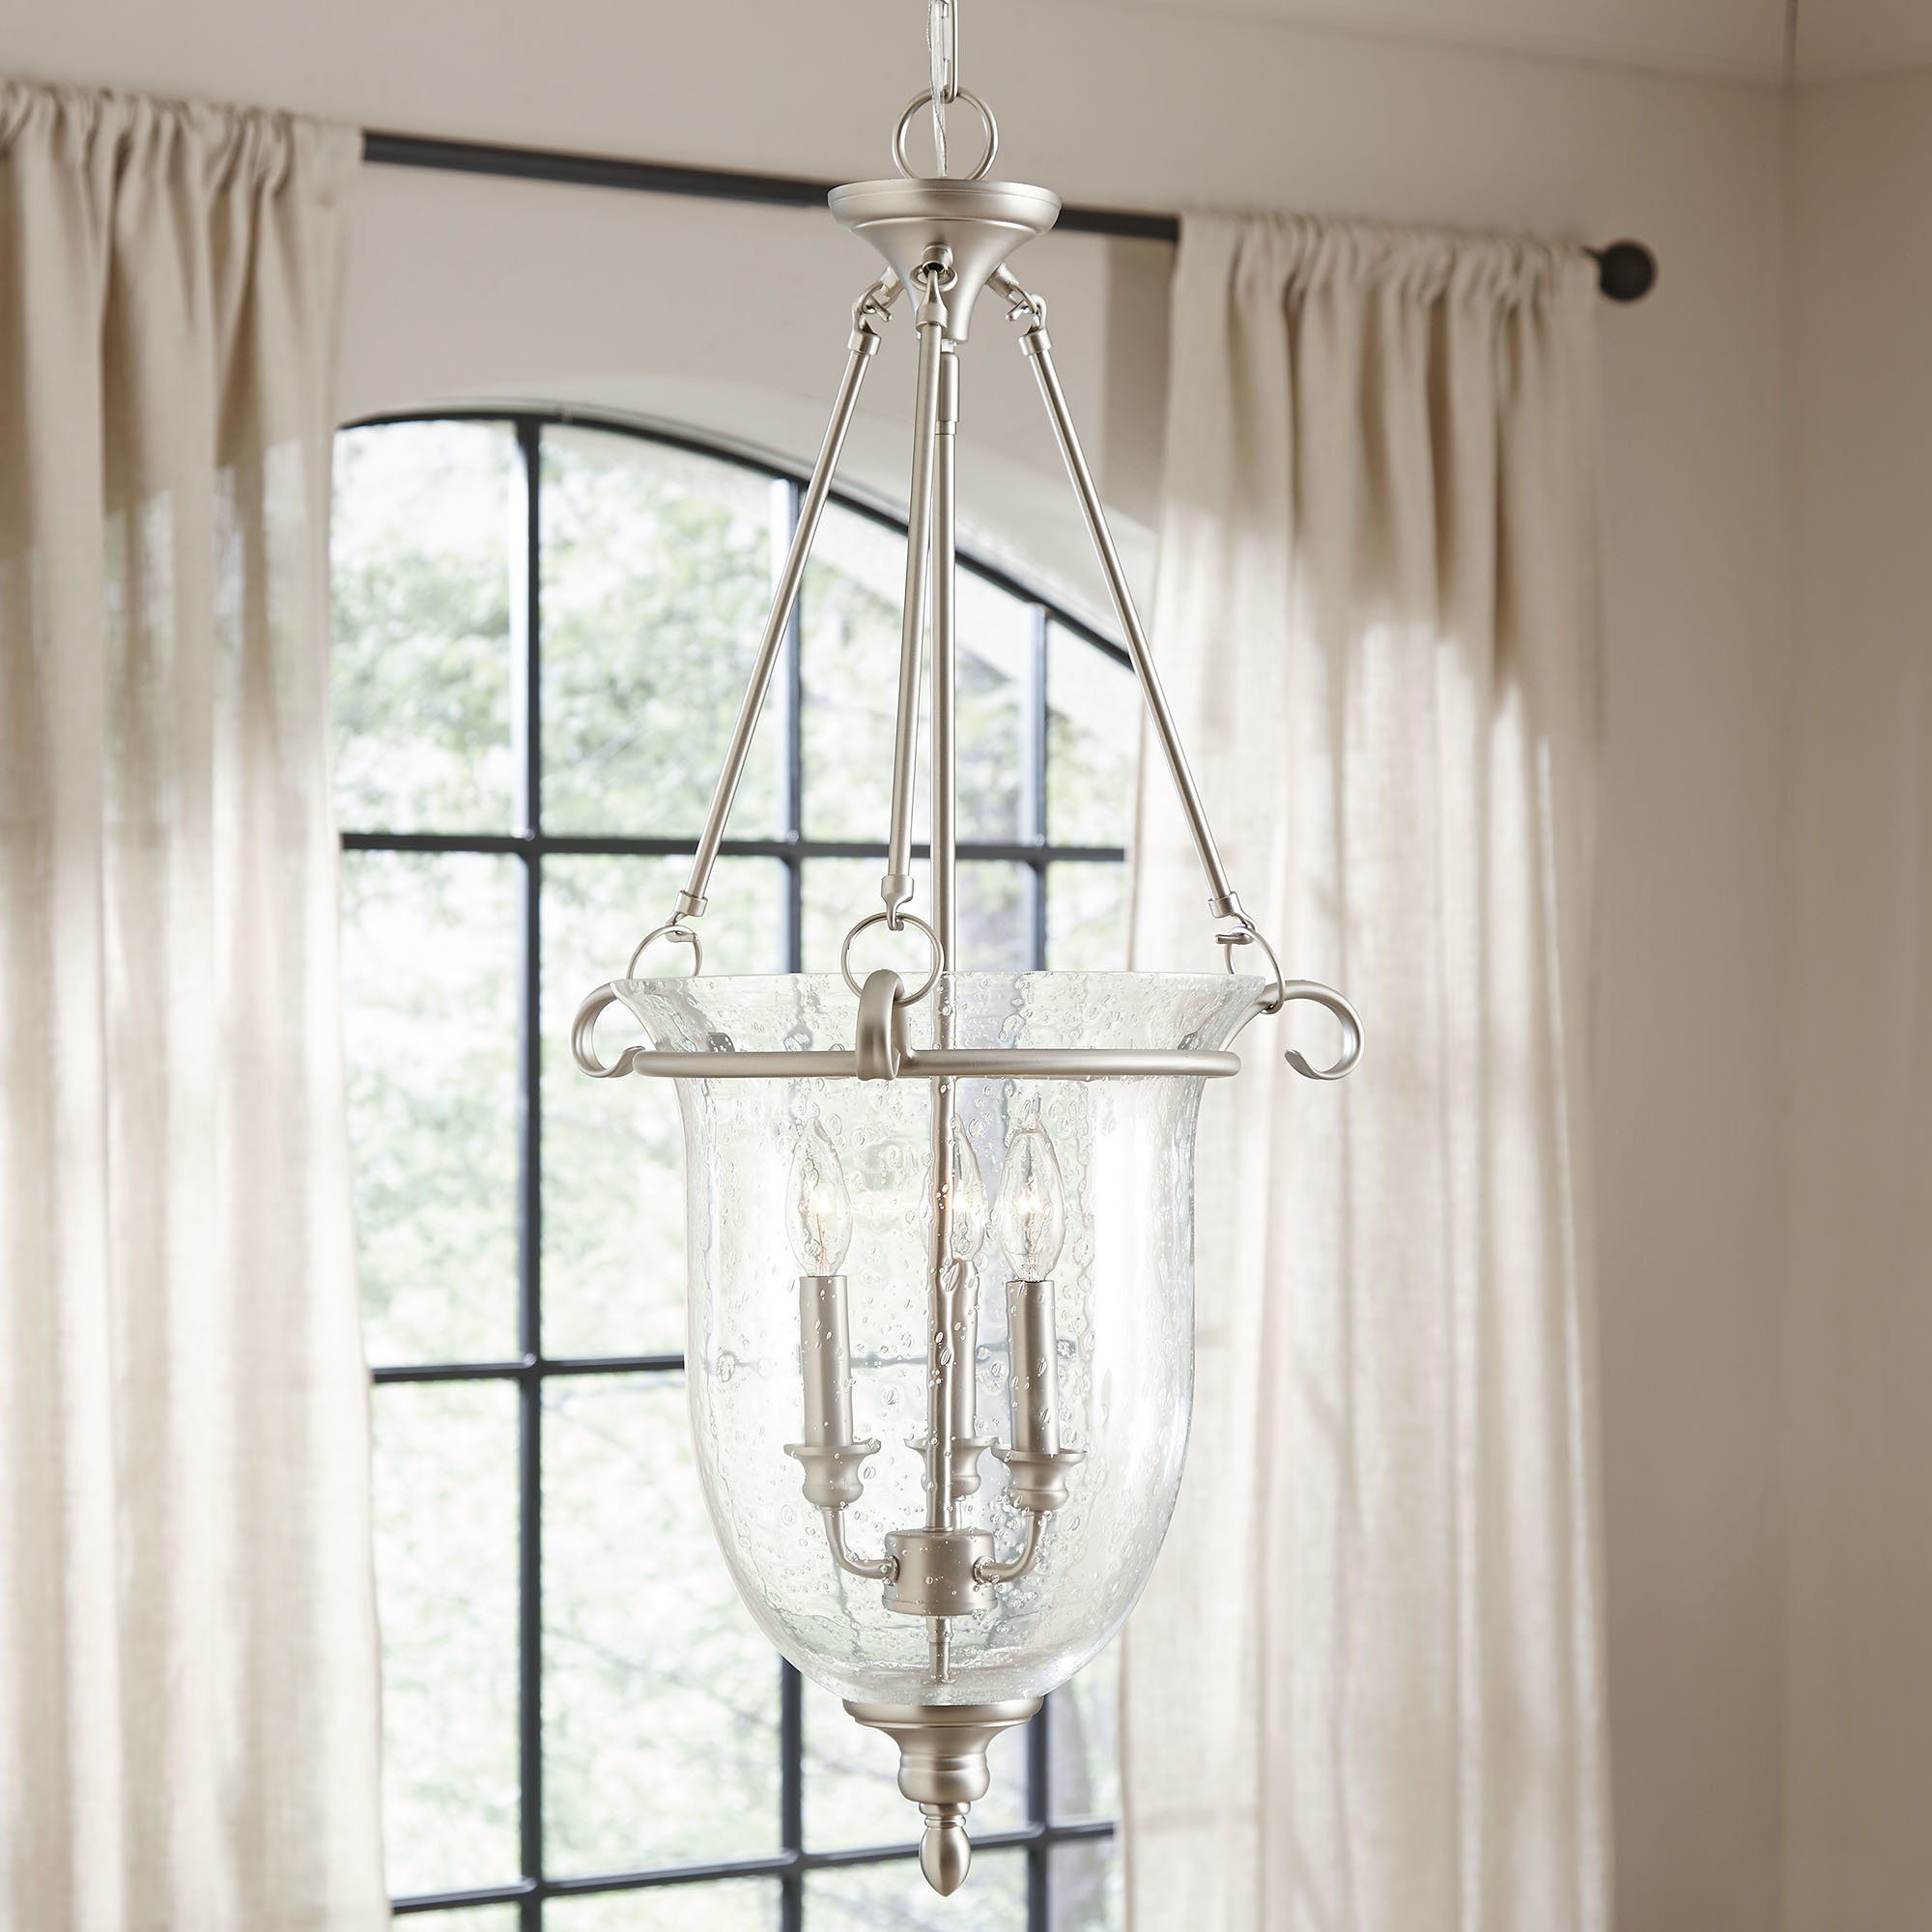 Best And Newest 3 Light Single Urn Pendant Pertaining To 3 Light Single Urn Pendants (View 1 of 20)